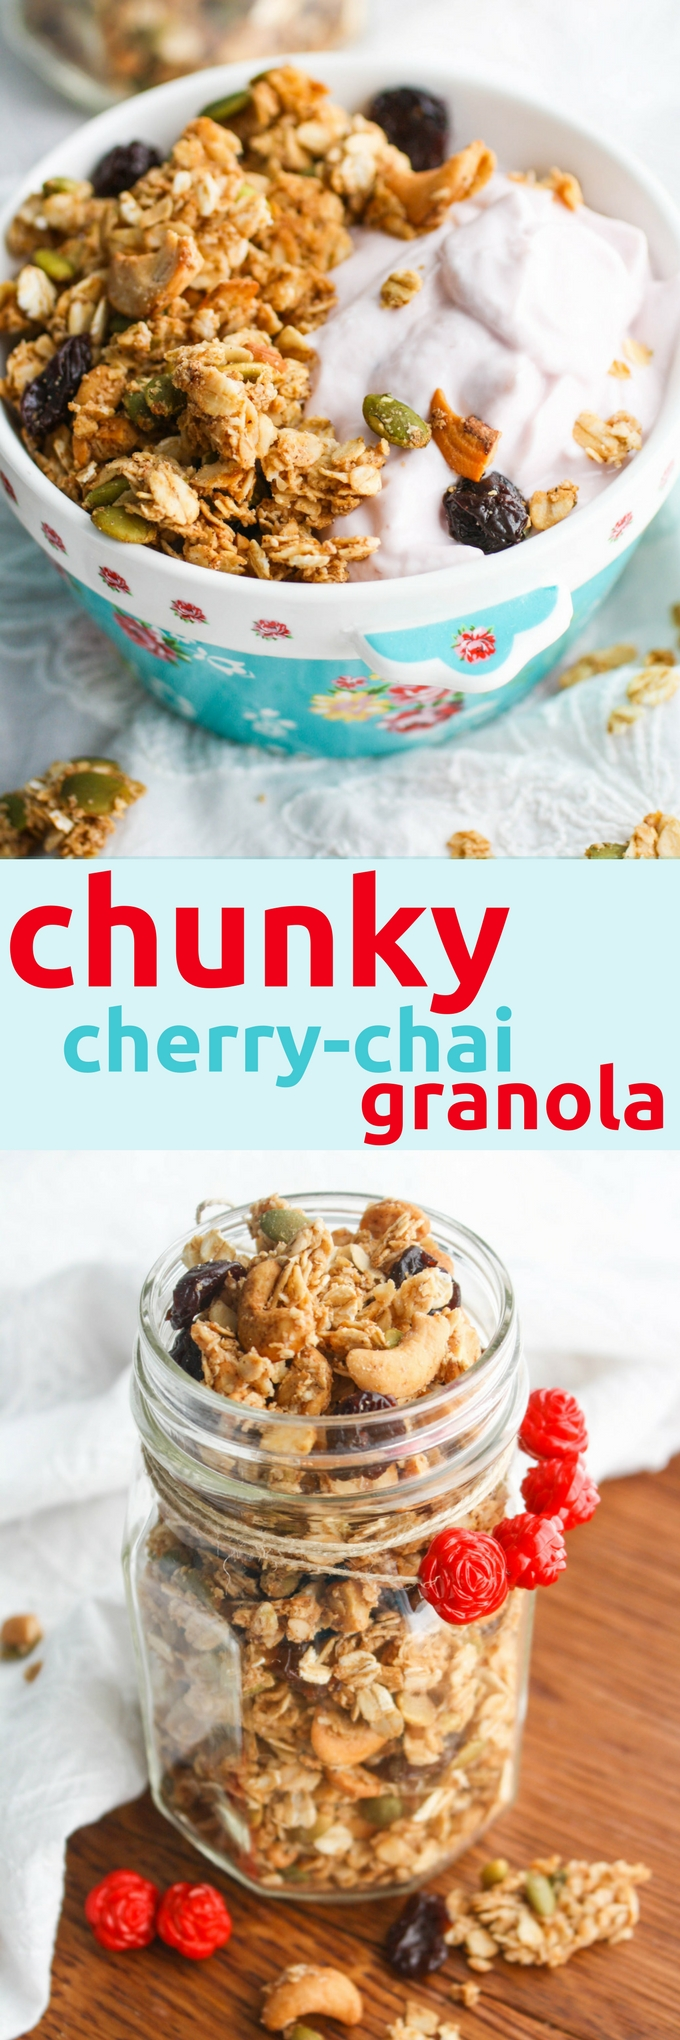 Chunky Cherry-Chai Granola is wonderful in the morning, afternoon, or evening! The ways to enjoy homemade granola are endless!